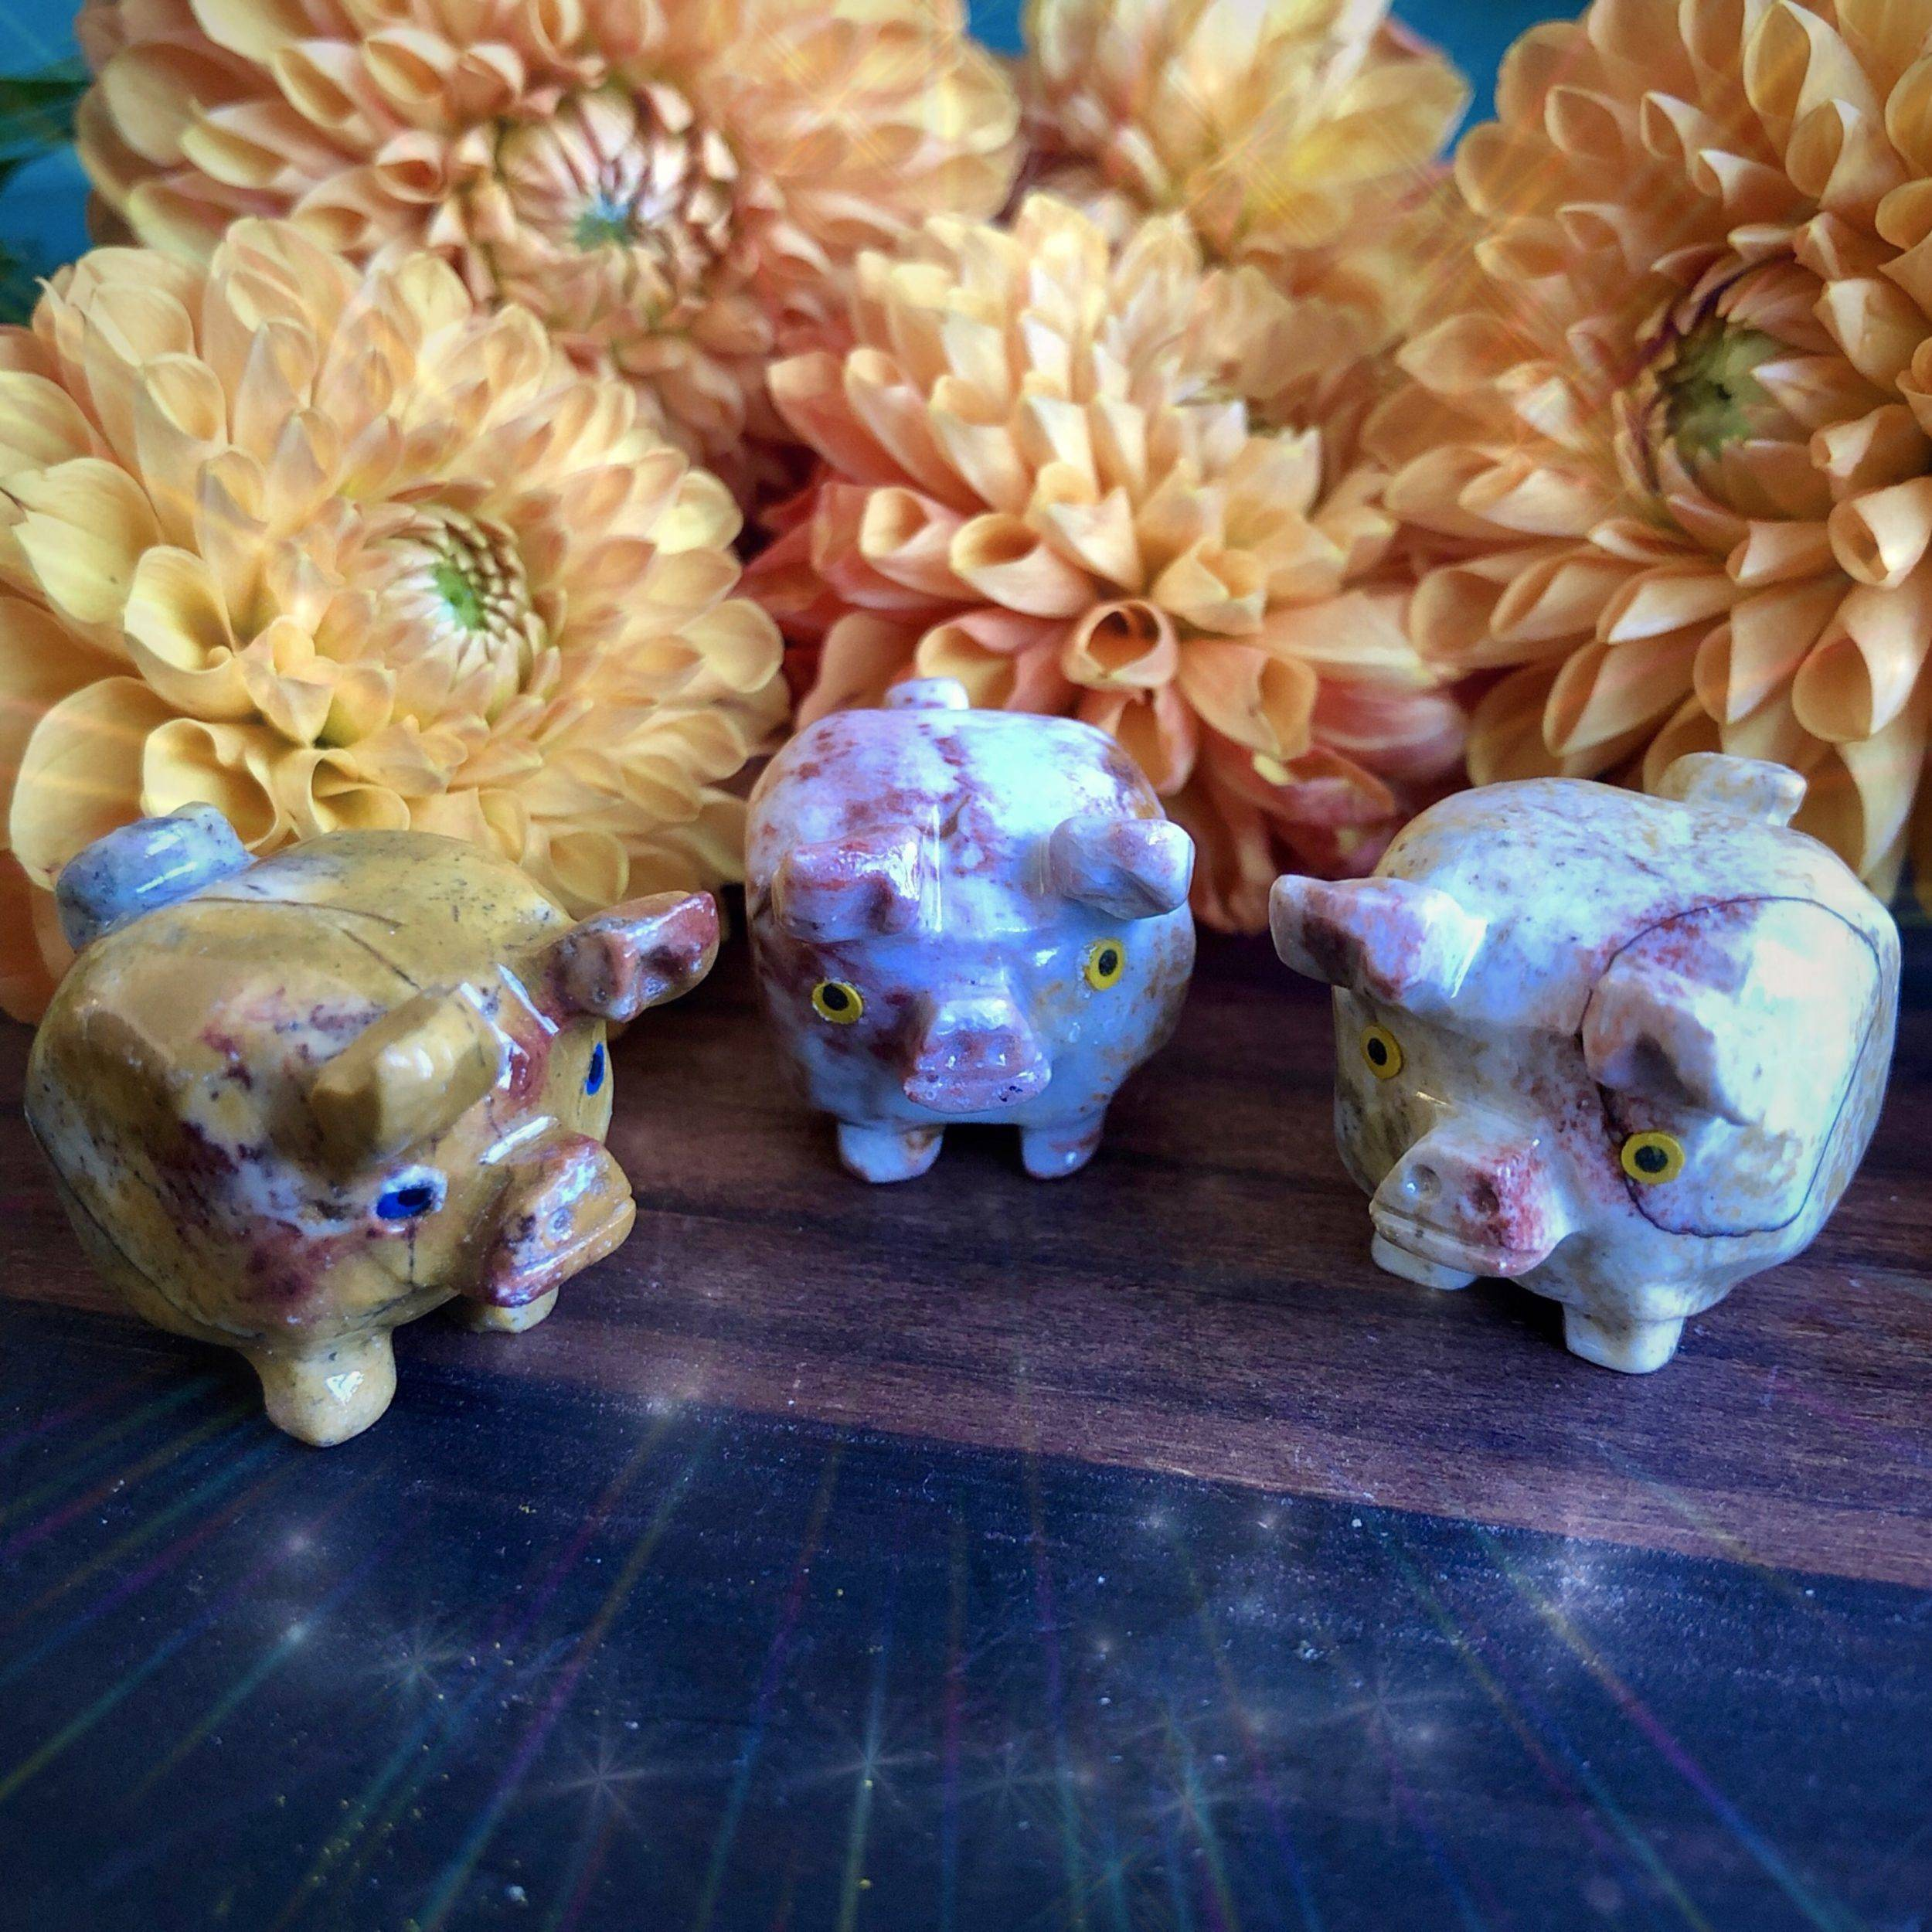 Soapstone_Good_Luck_Pig_4of4_8_29